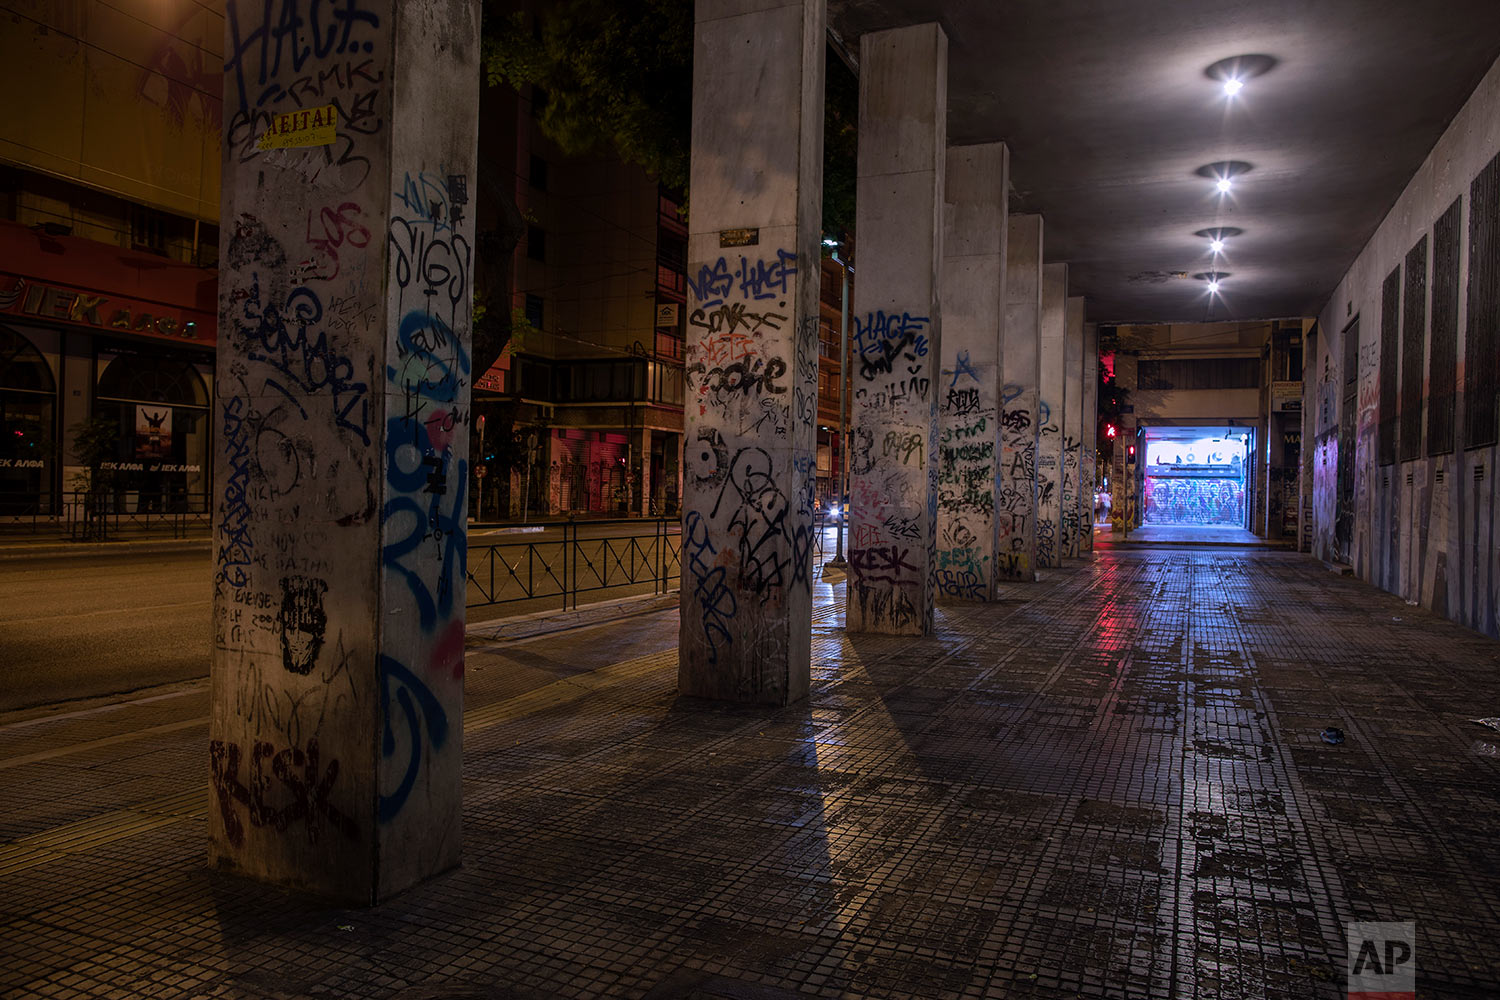 A building and its columns are covered with graffiti in Exarcheia district of Athens, July 25, 2019. (AP Photo/Petros Giannakouris)